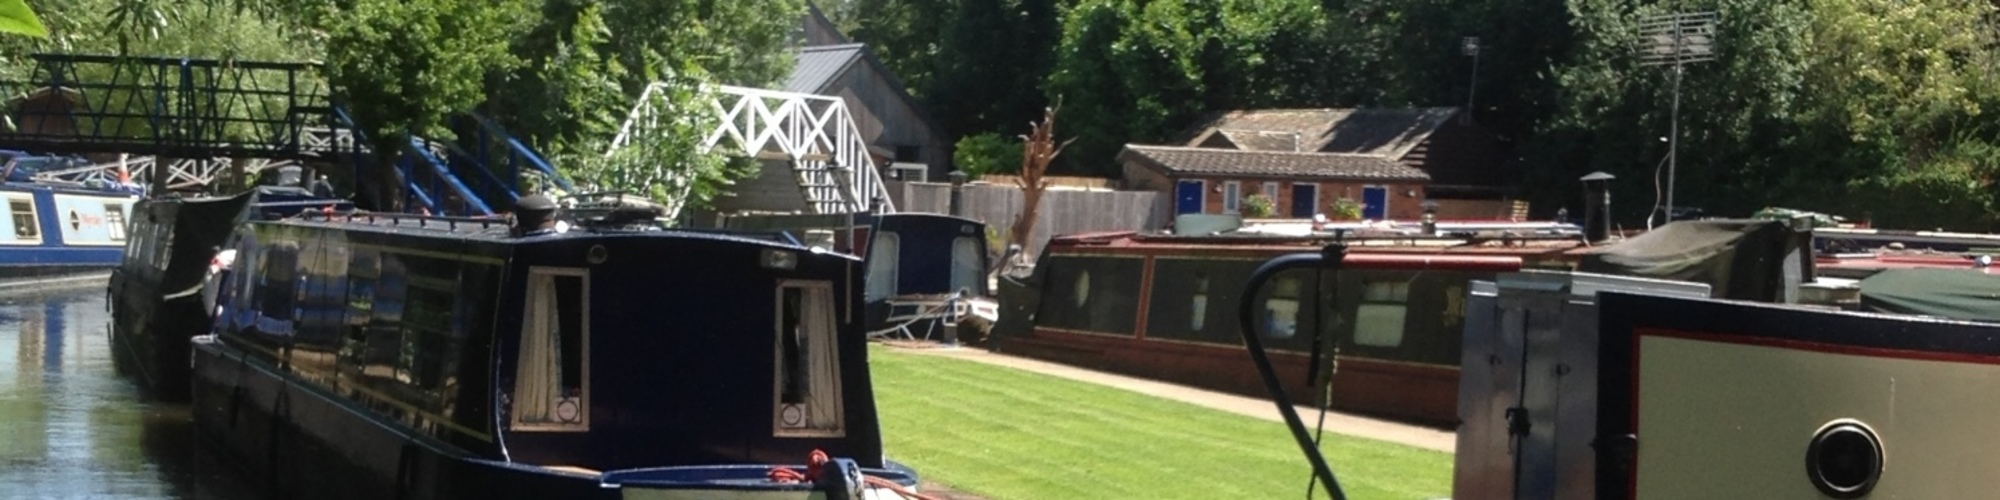 Narrowboat Mooring in Newbury, Moorings in Newbury, Boat Mooring in Newbury